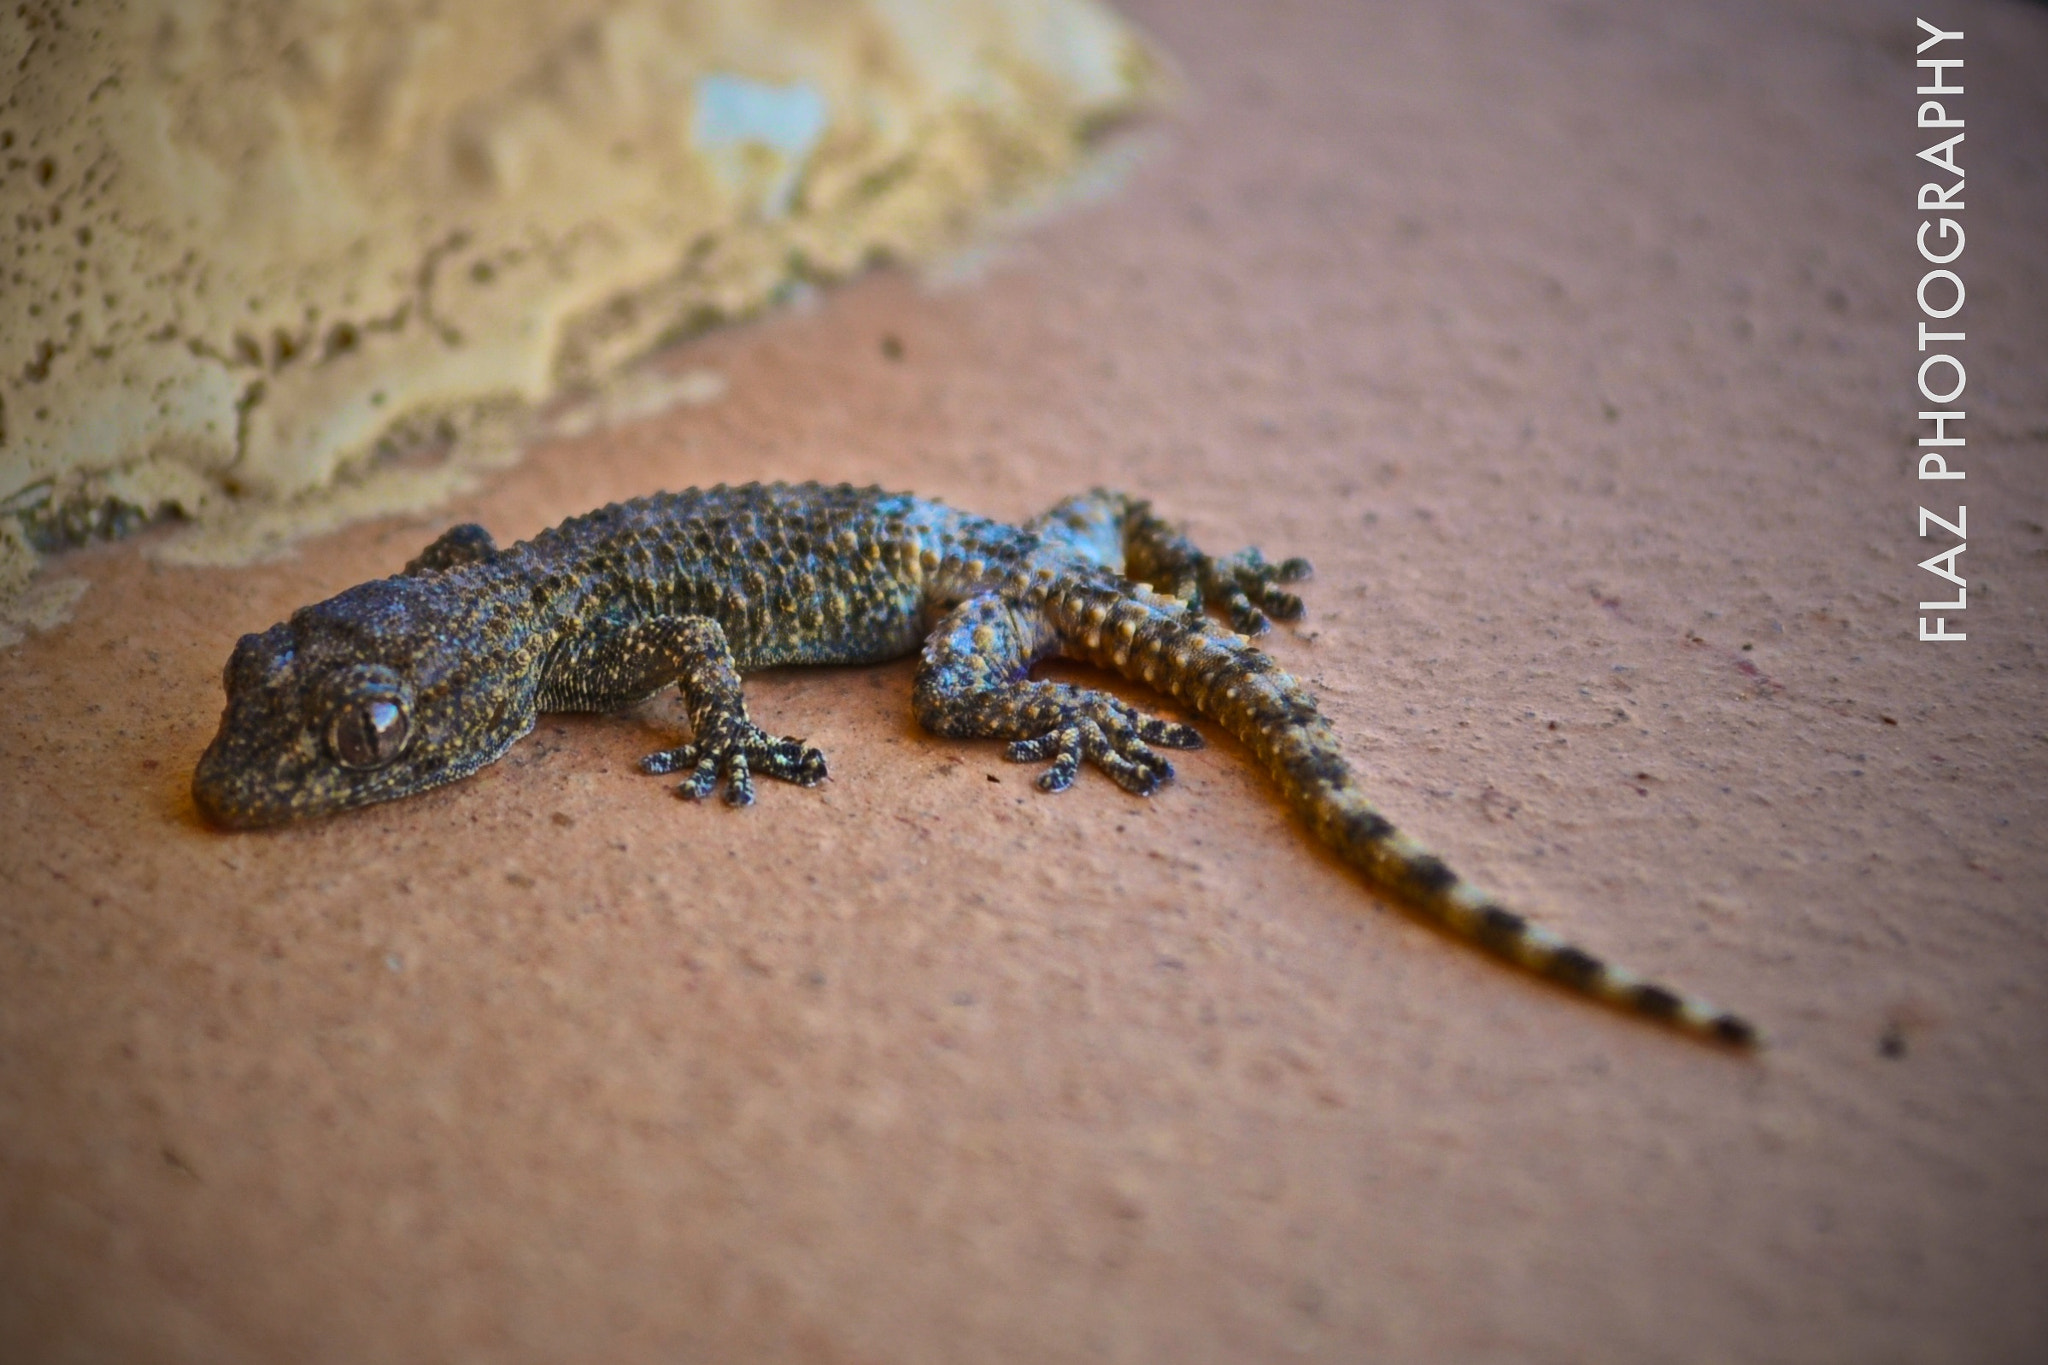 Photograph The look of the little salamander by Florencia  on 500px